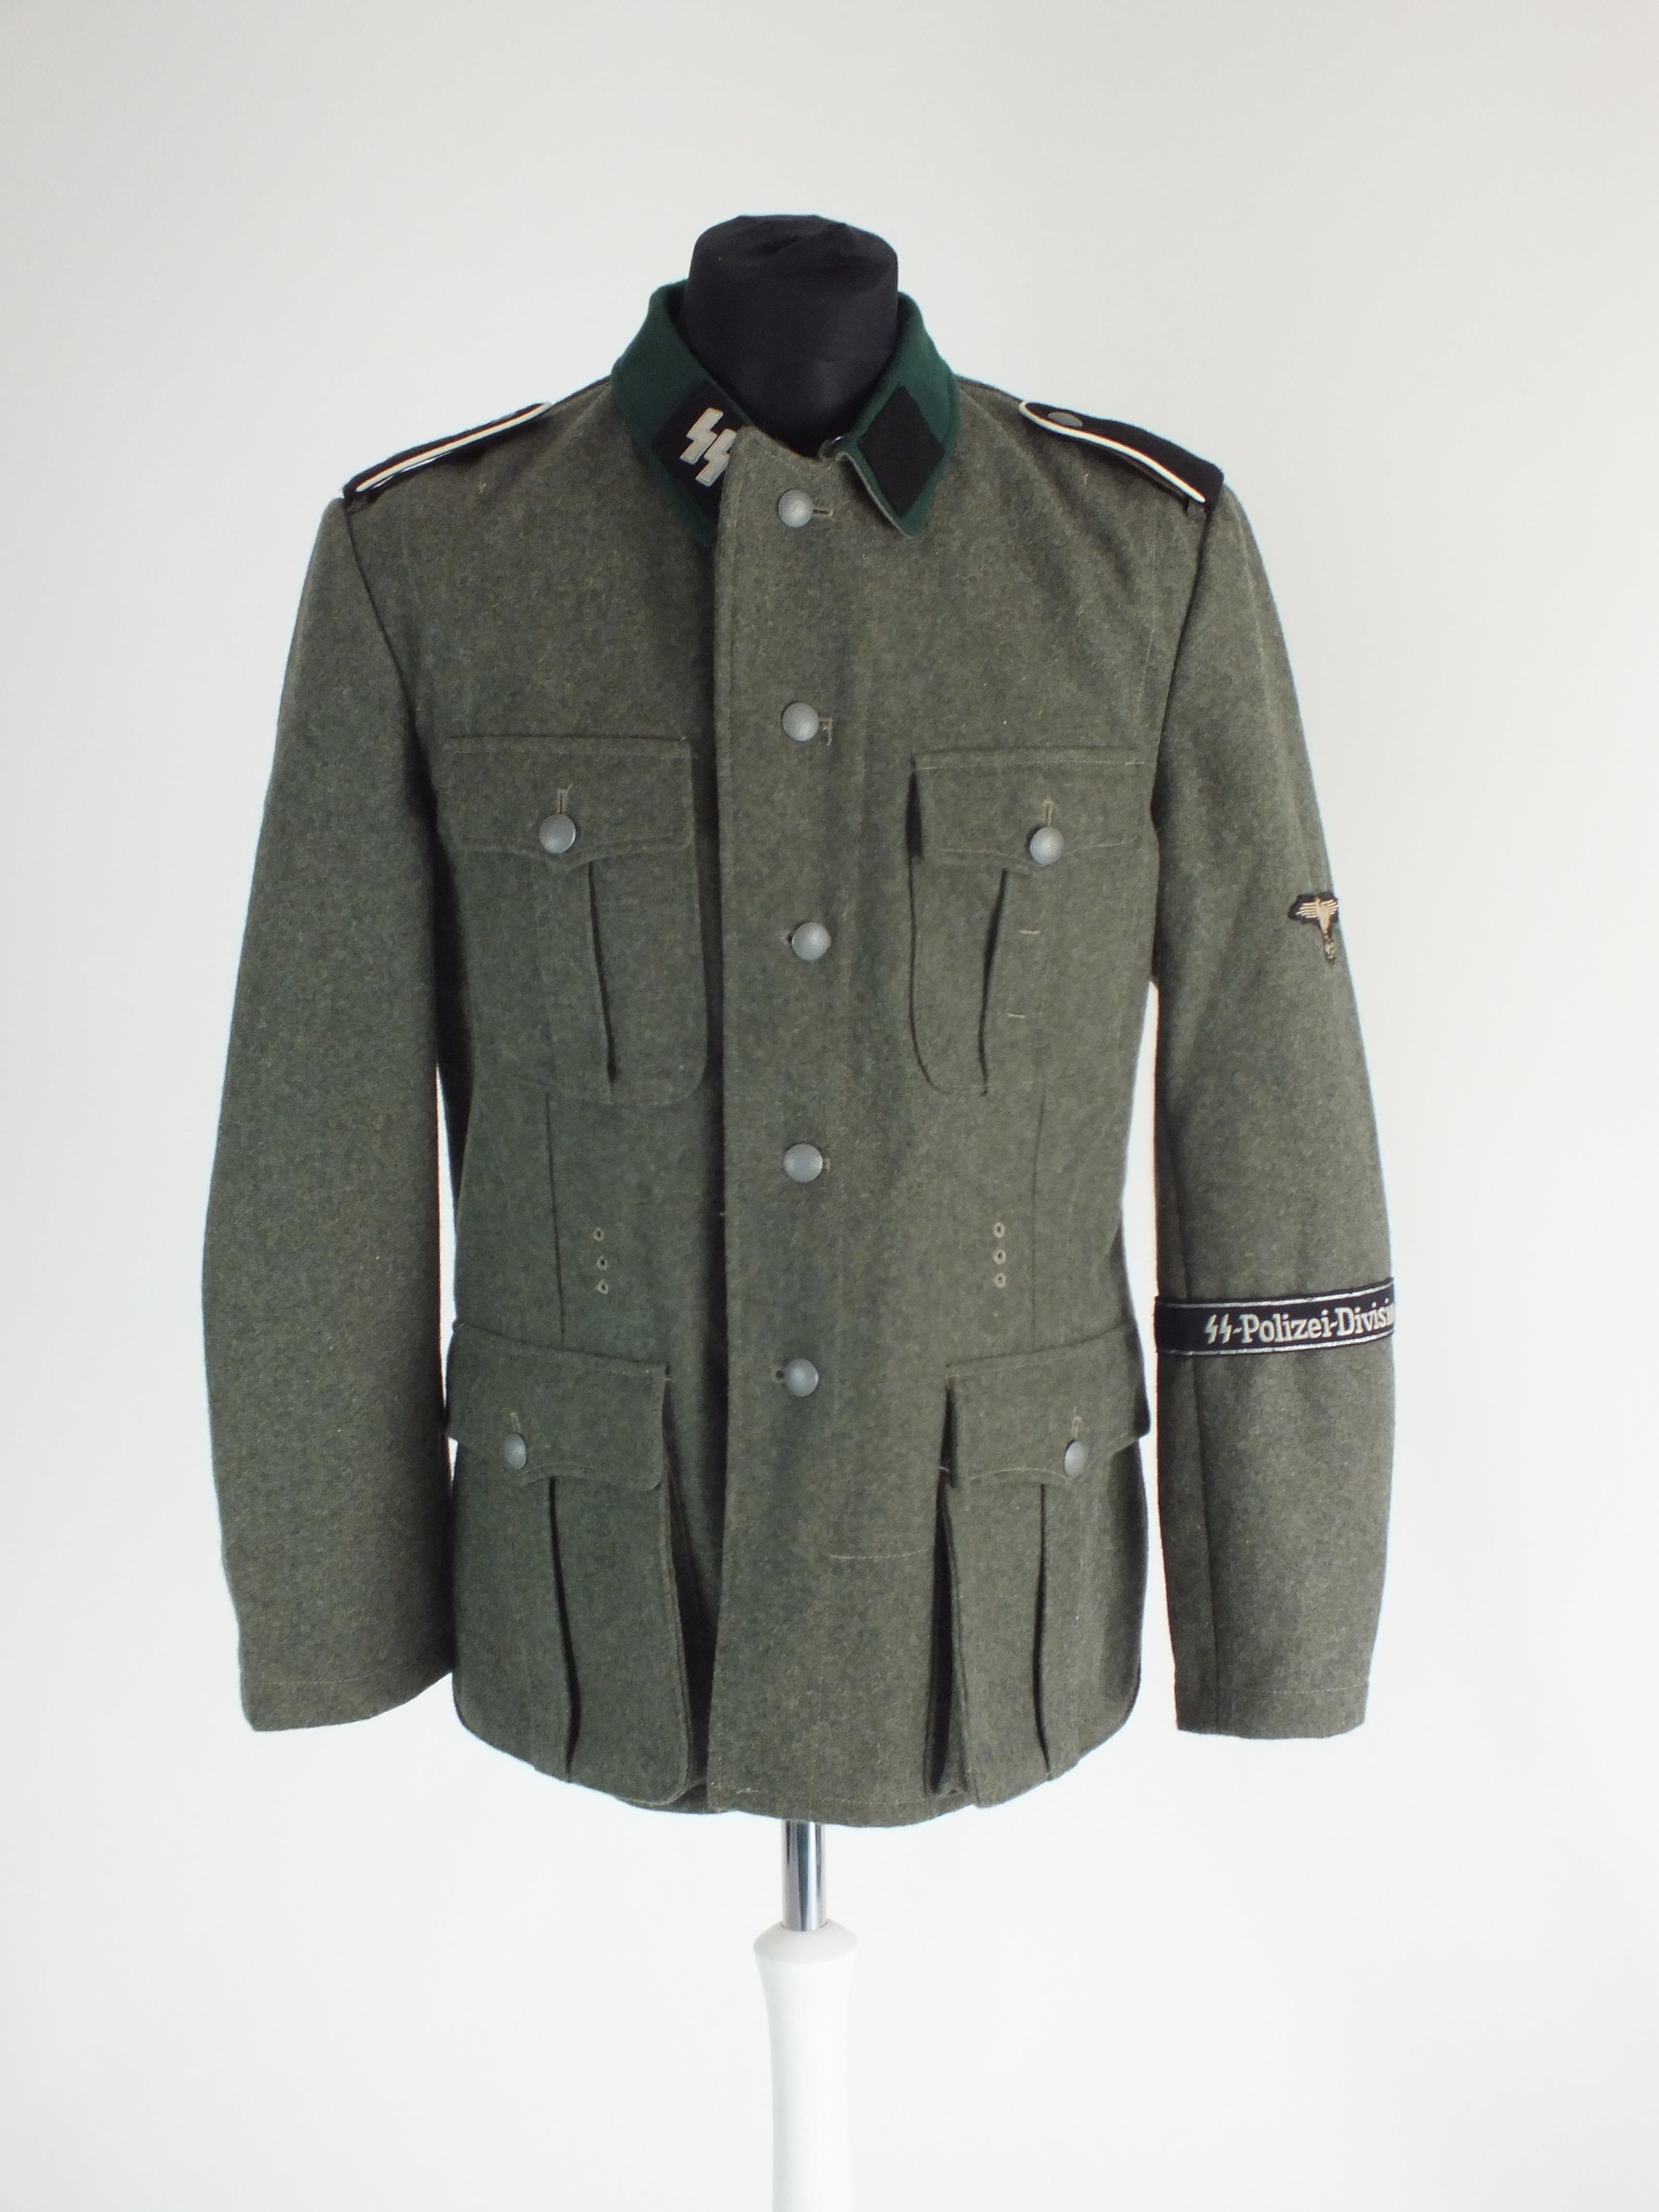 A good re-enactor or film set prop uniform for a German SS Polizei Division Mann, the tunic with